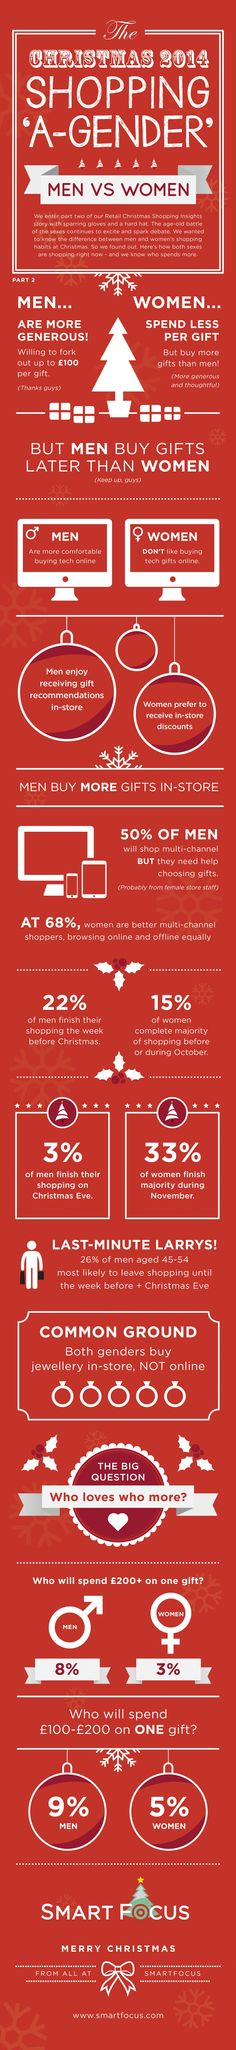 Men vs Women - Who spends more at Christmas?